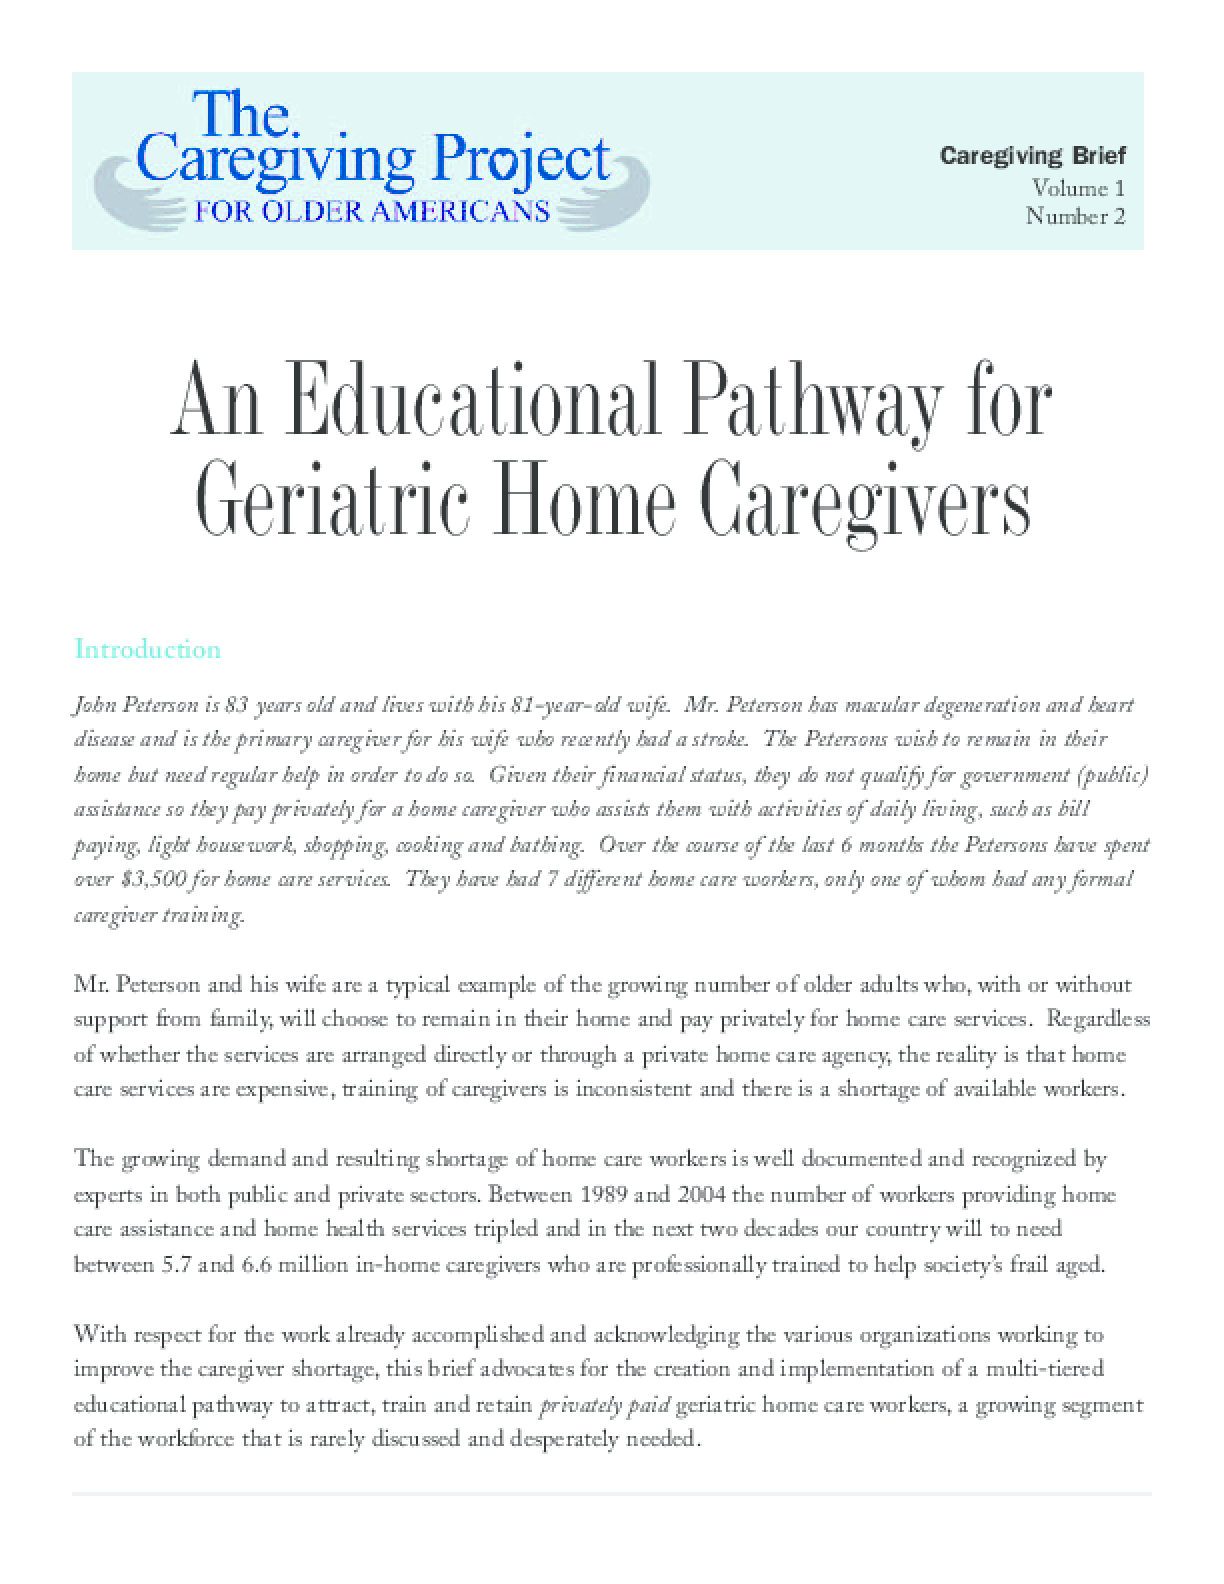 An Educational Pathway for Geriatric Home Caregivers